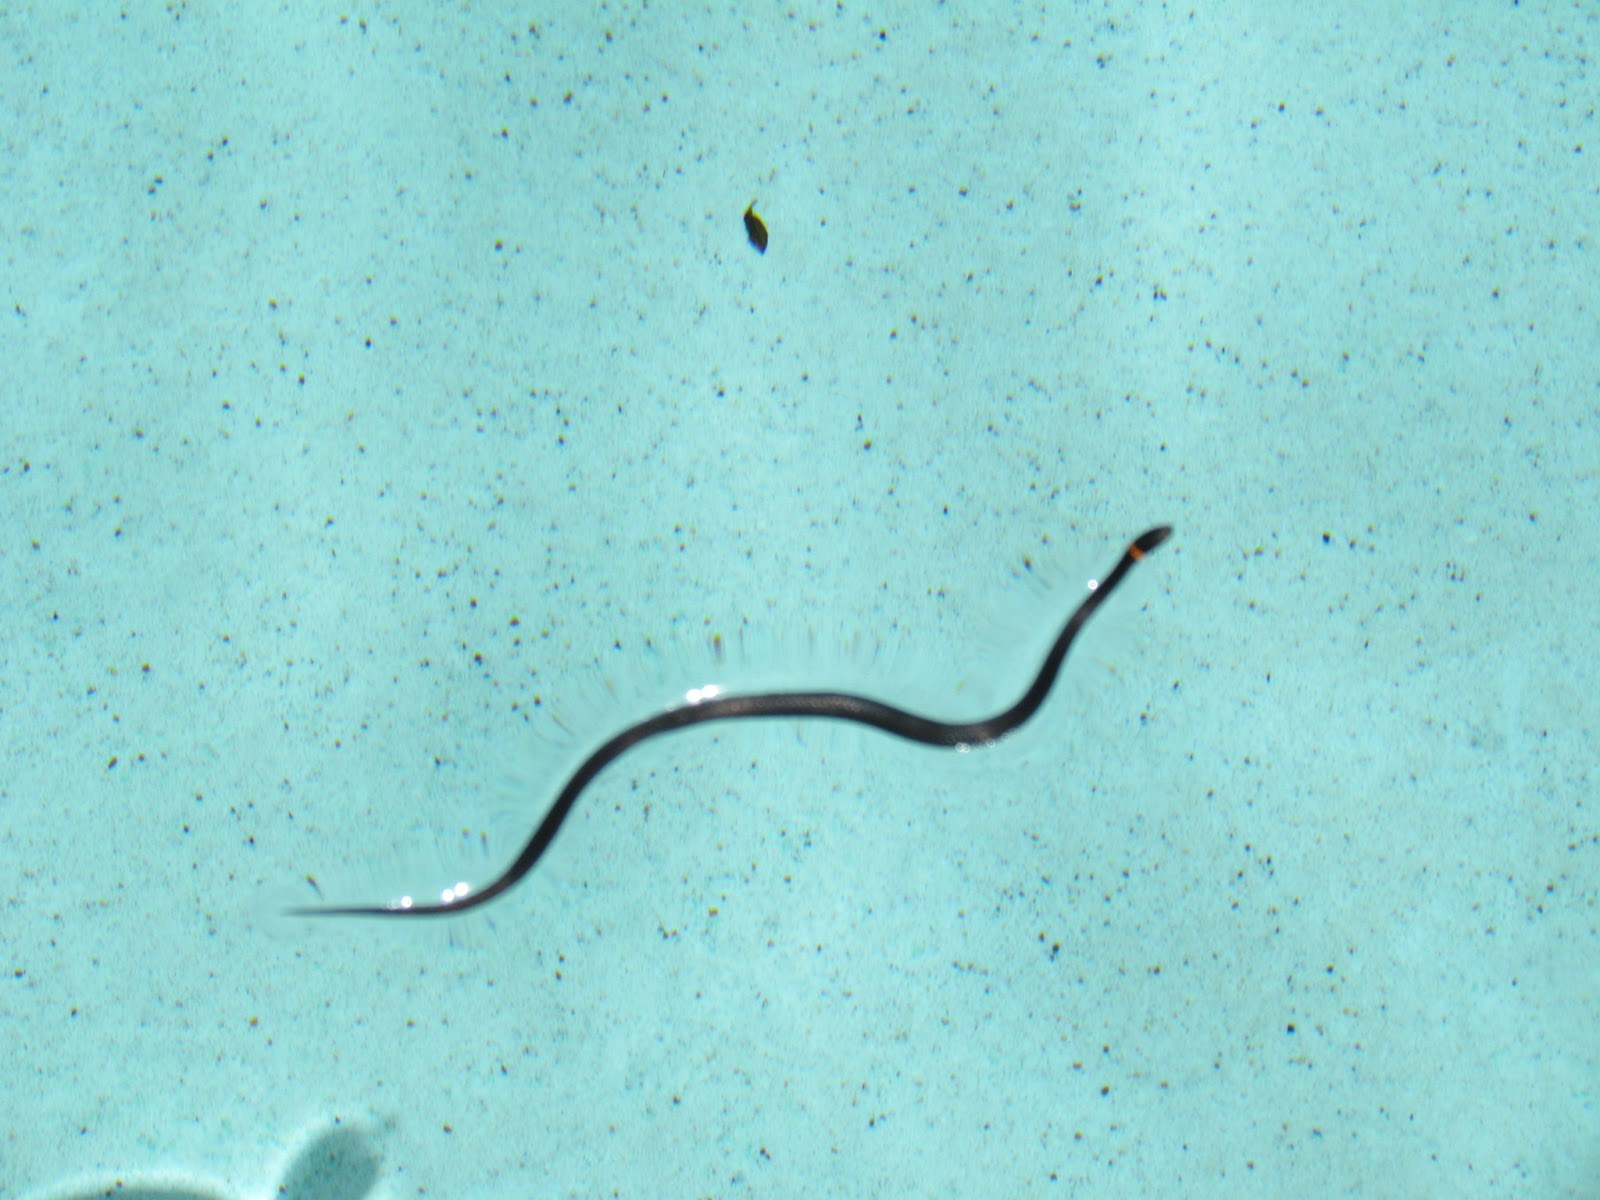 gill and keith world tour snake in the swimming pool